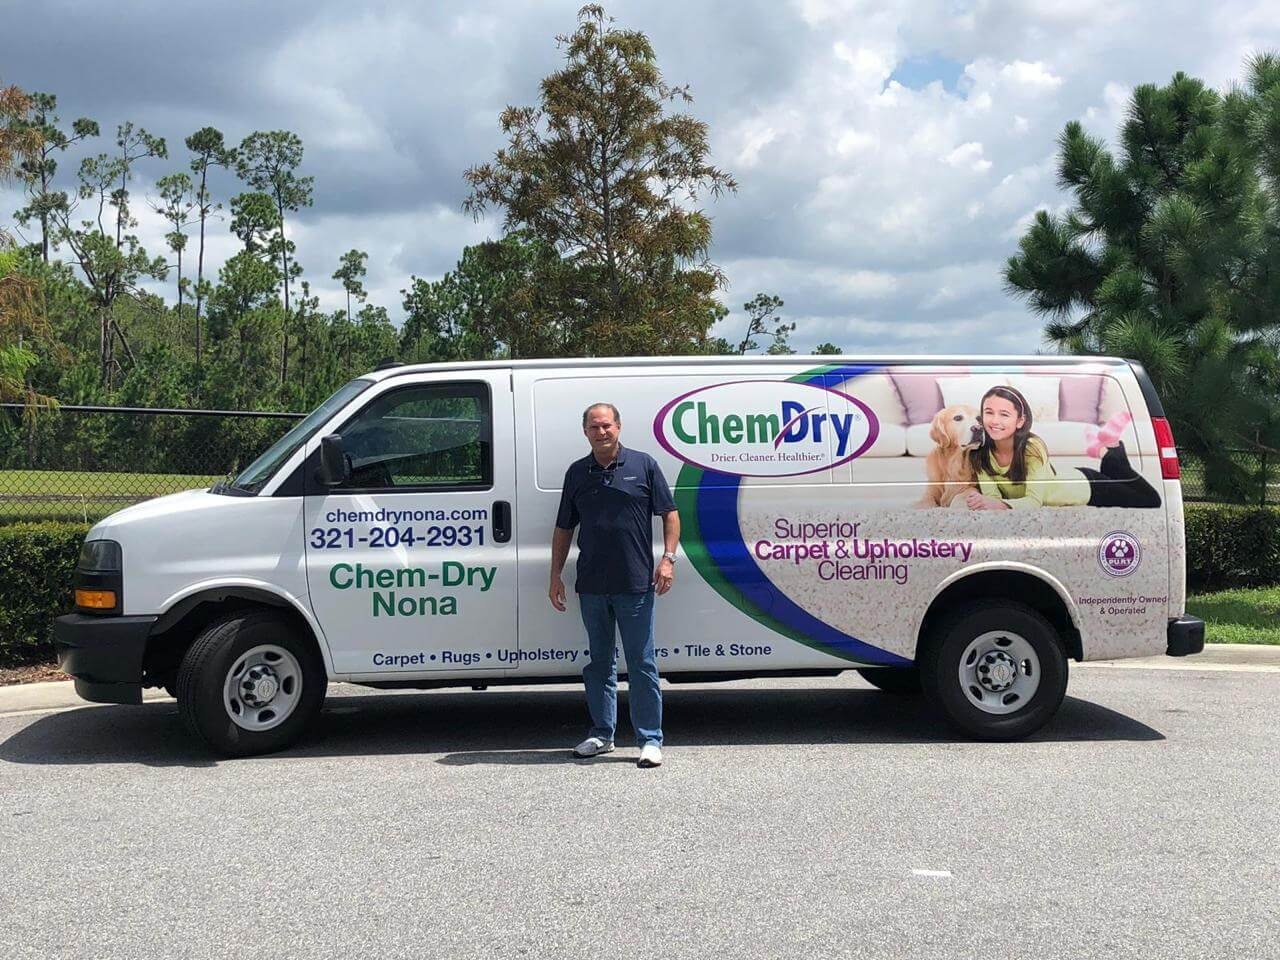 Chem-Dry of Nona service van and technician preparing for carpet cleaning service